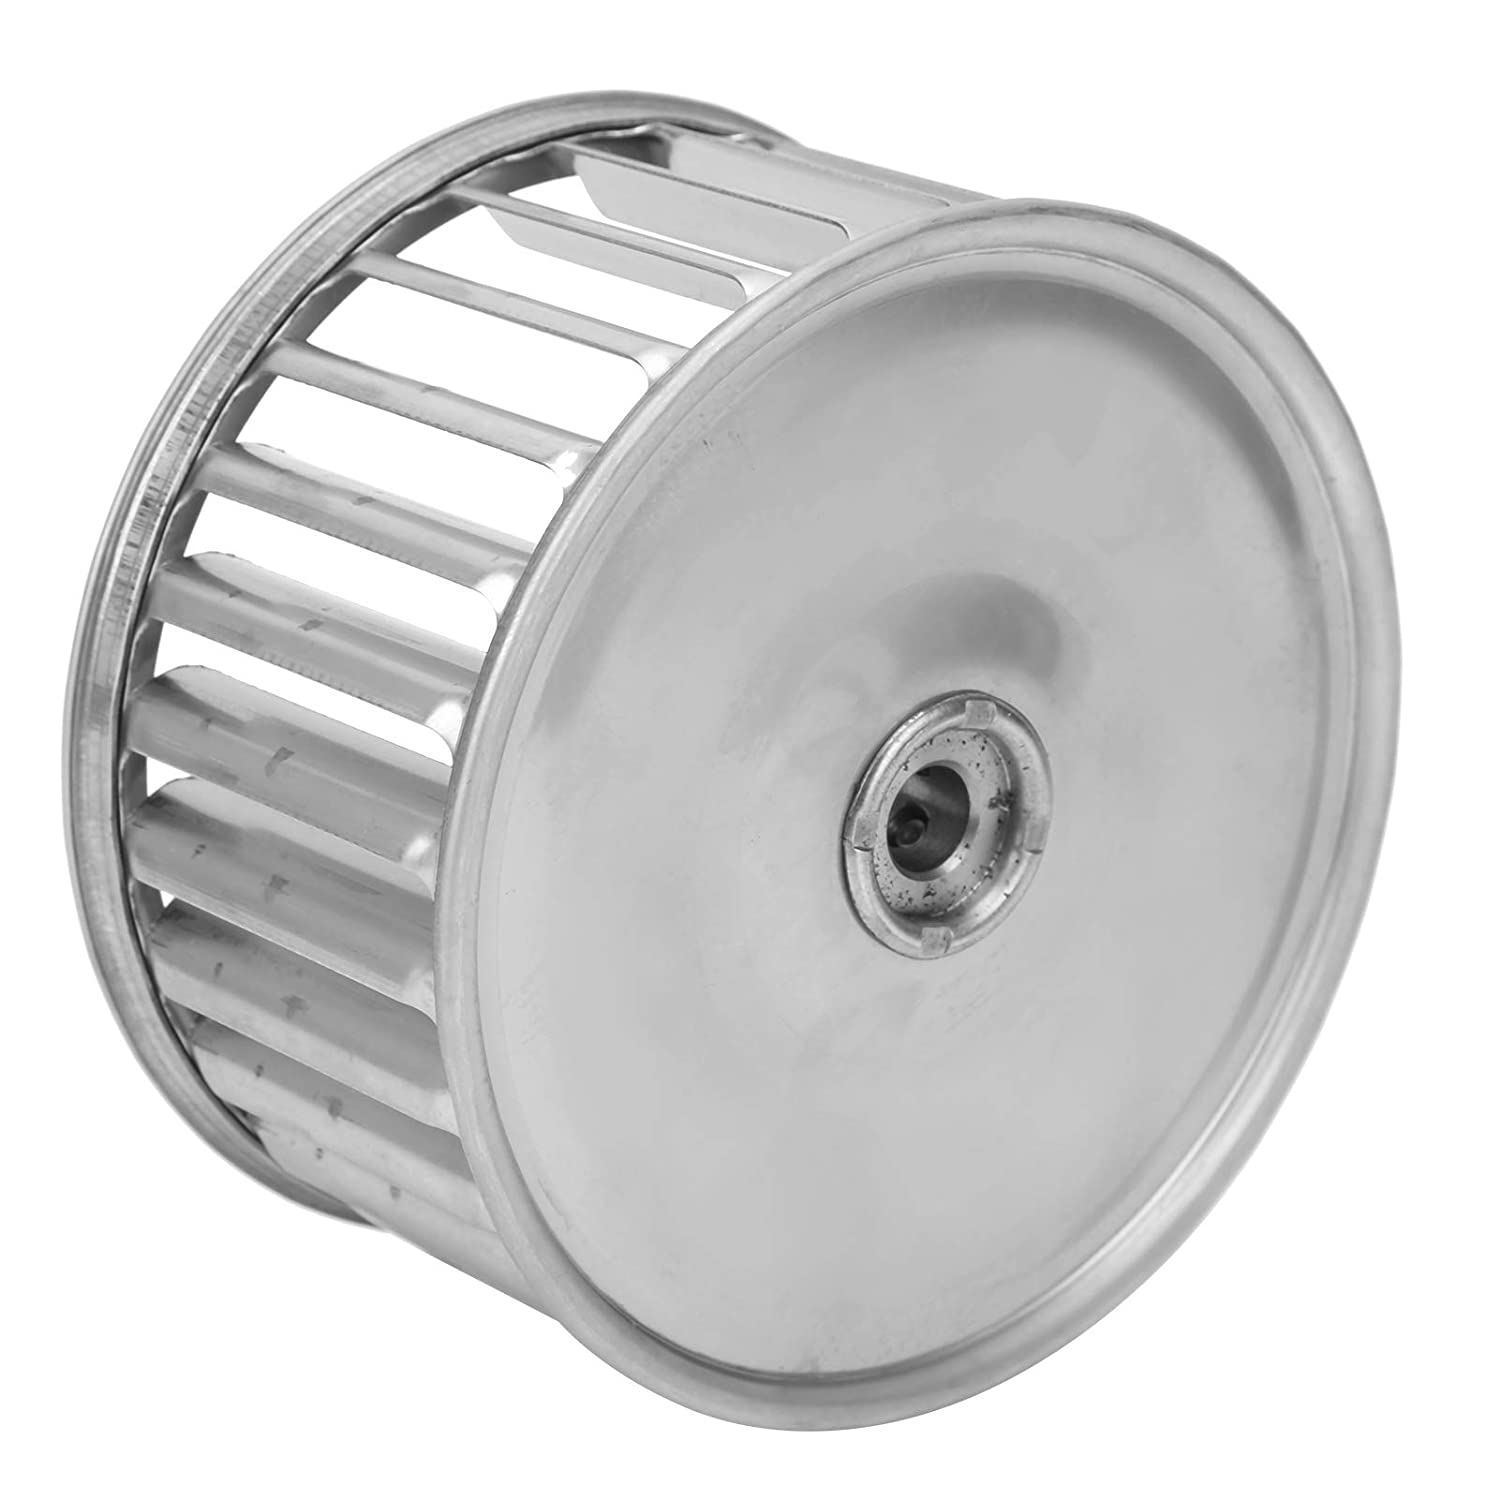 Multi-Wing Centrifugal Fan Wheel Discount is also underway Challenge the lowest price Galvanized Screw Fixation Shee